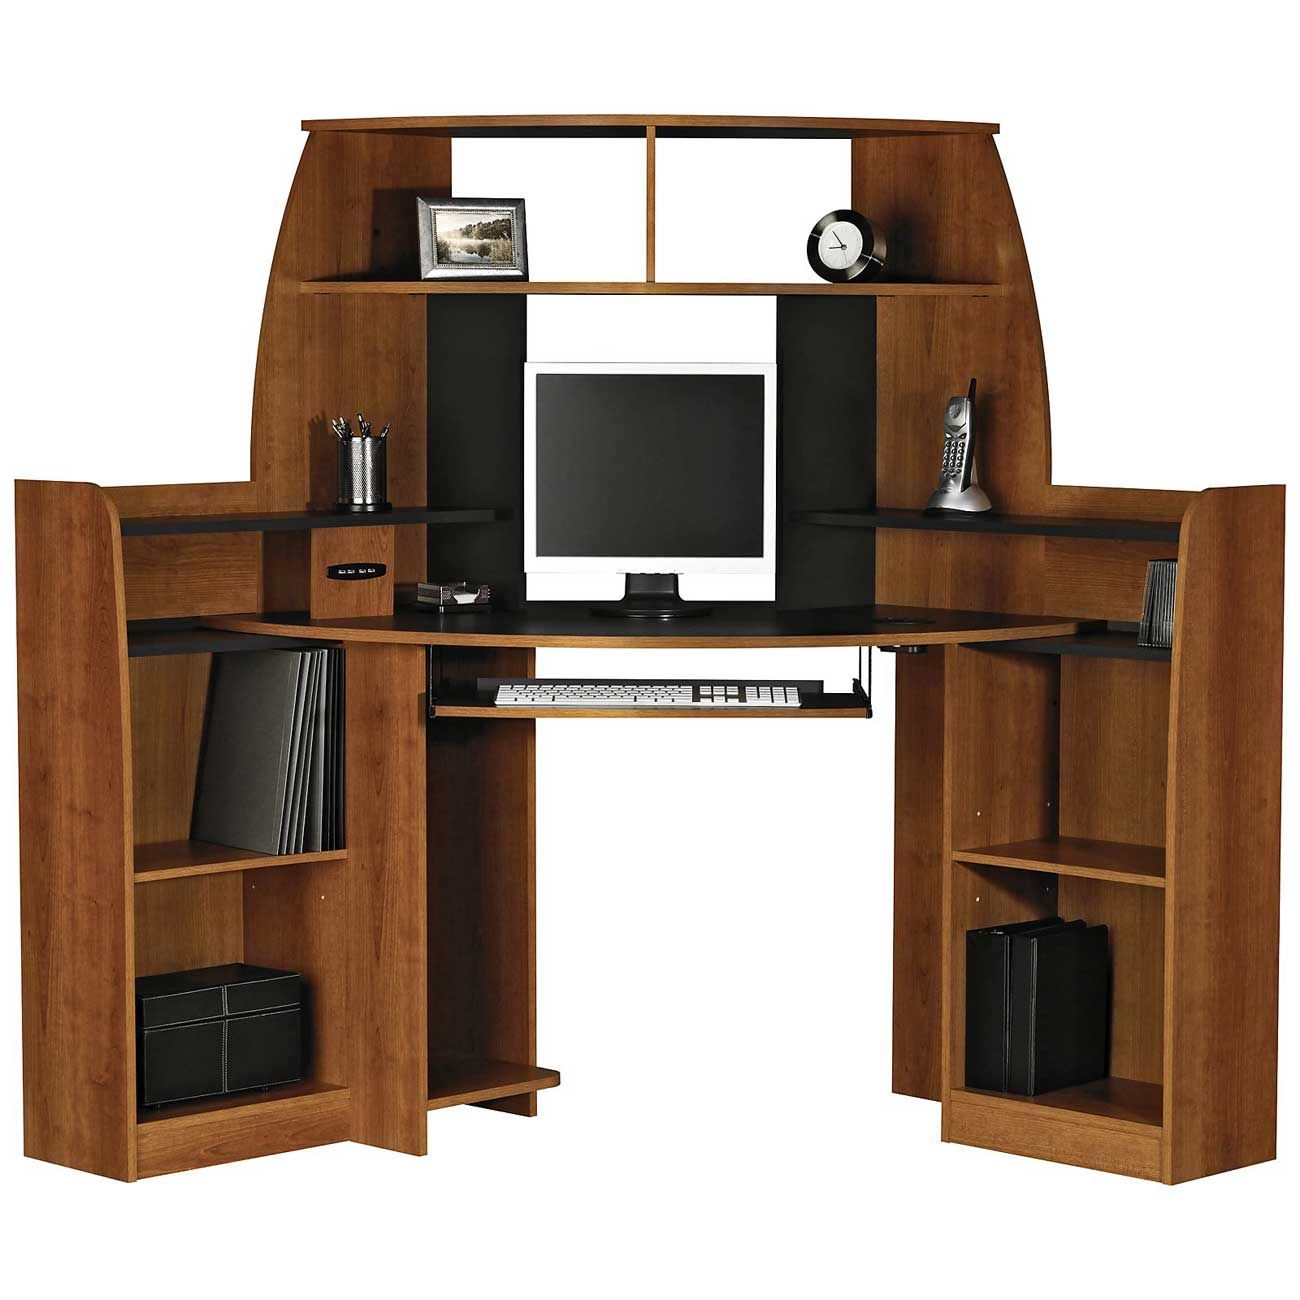 Solid Wood Corner Computer Desk With Double Storage My Kas - Computer desk with hutch plans